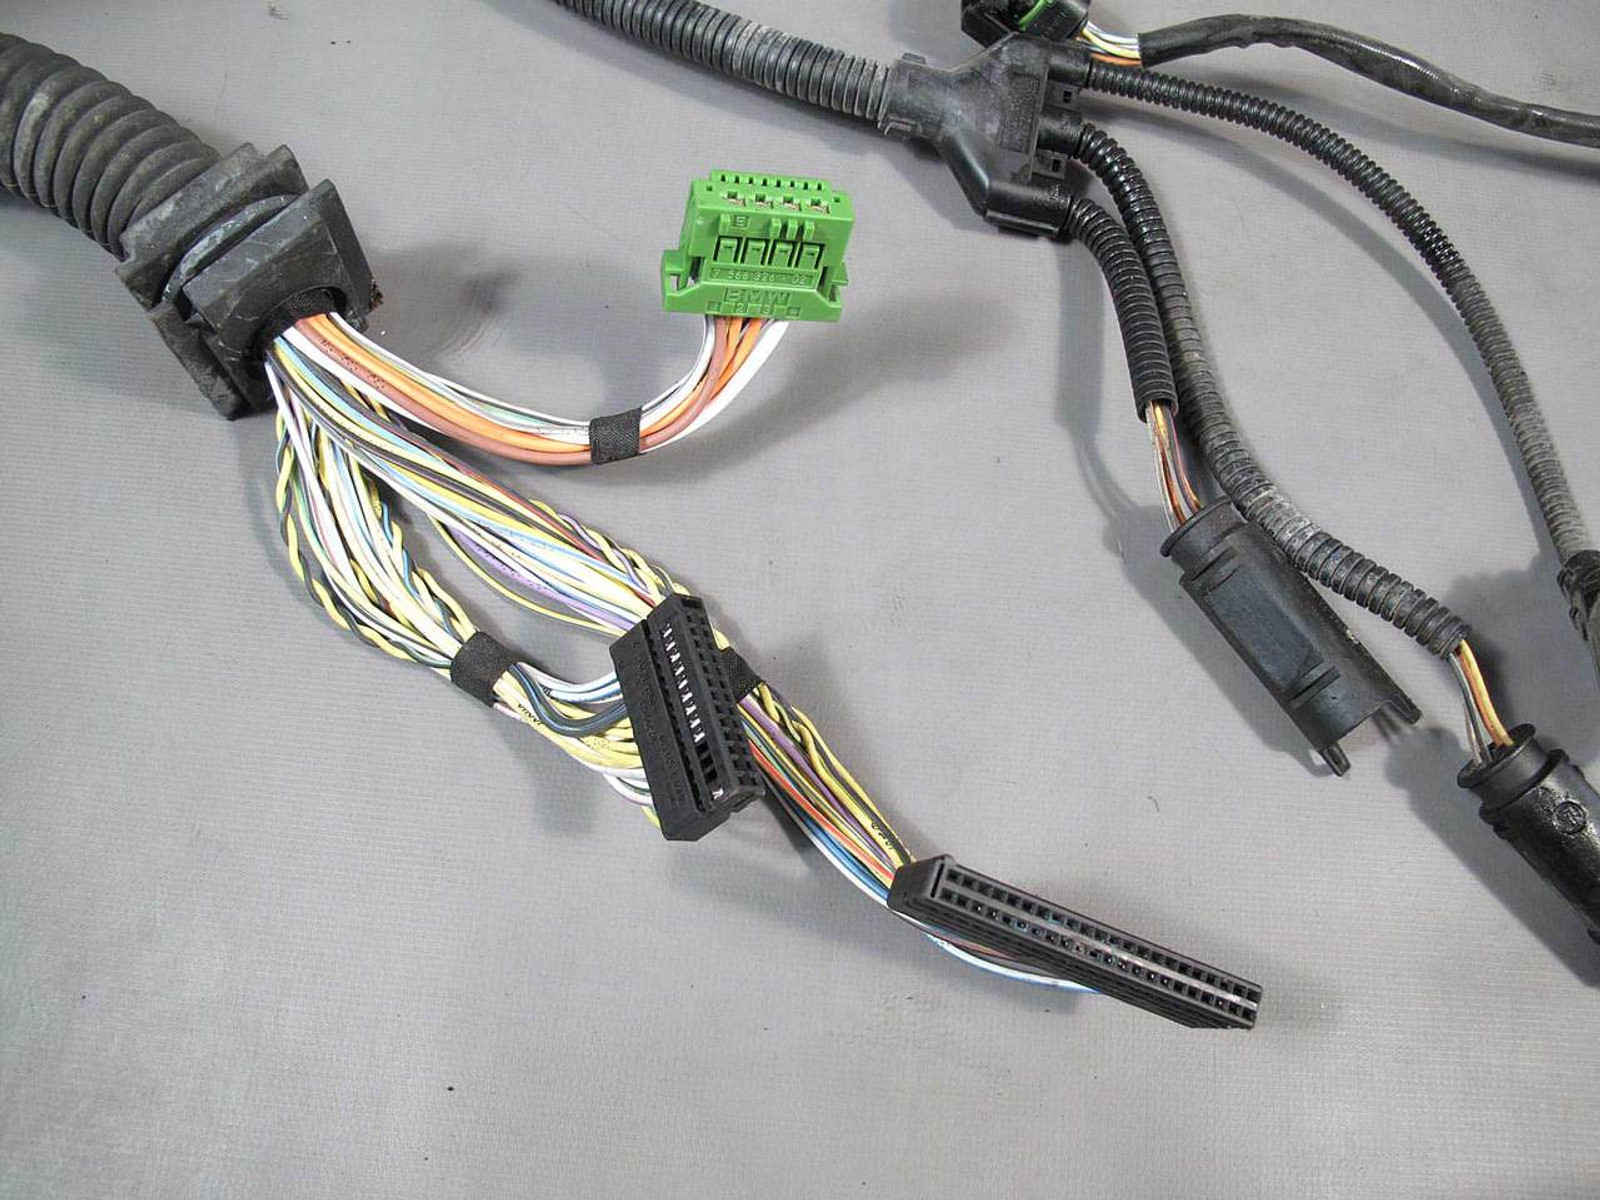 BMW N54 Turbo 3.0L 6-Cyl Engine Electrical Wiring Harness Complete ...